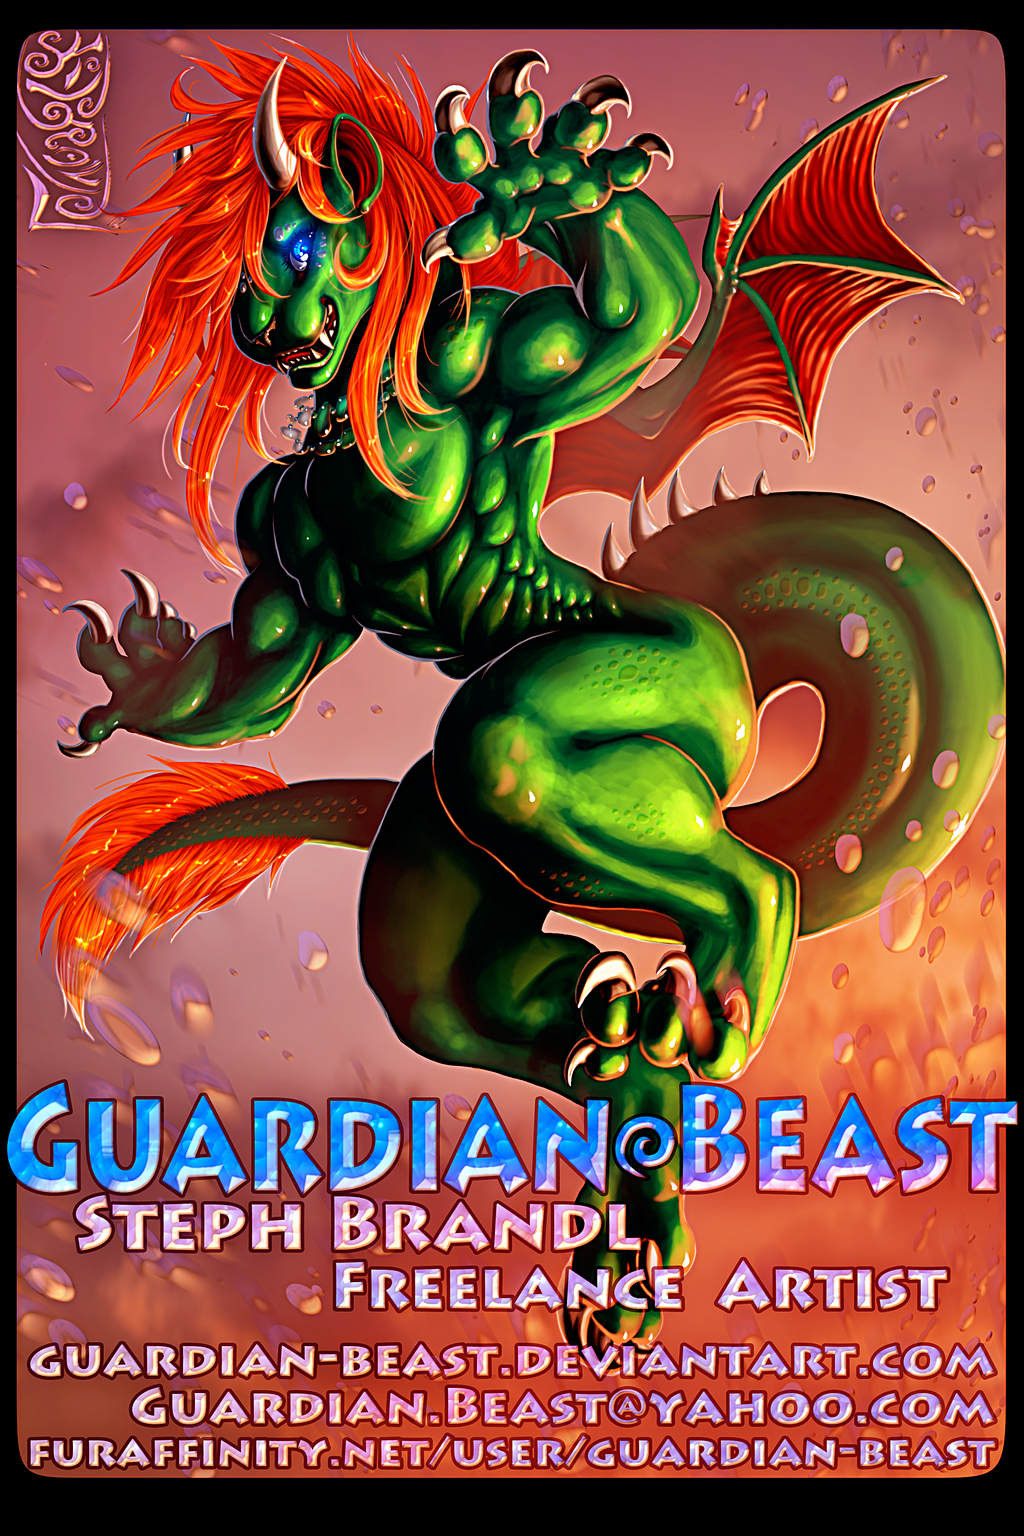 Guardian-Beast's Profile Picture